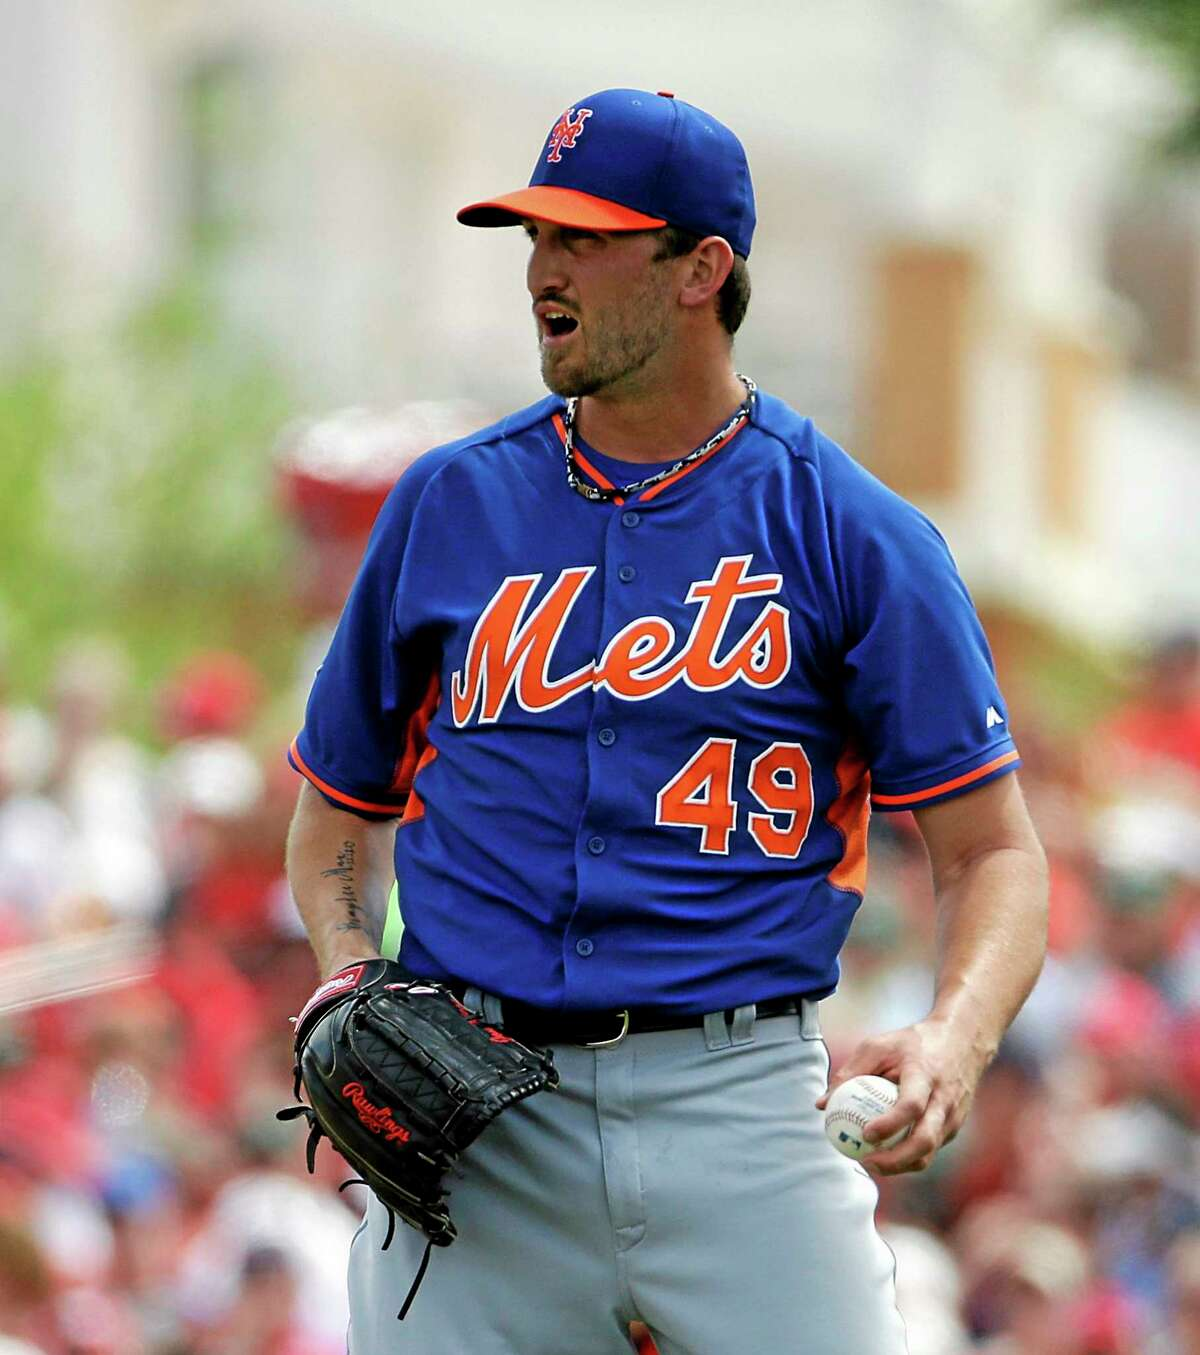 Starting pitcher Jonathon Niese is back with the New York Mets after undergoing an MRI on his left elbow that came back clean.